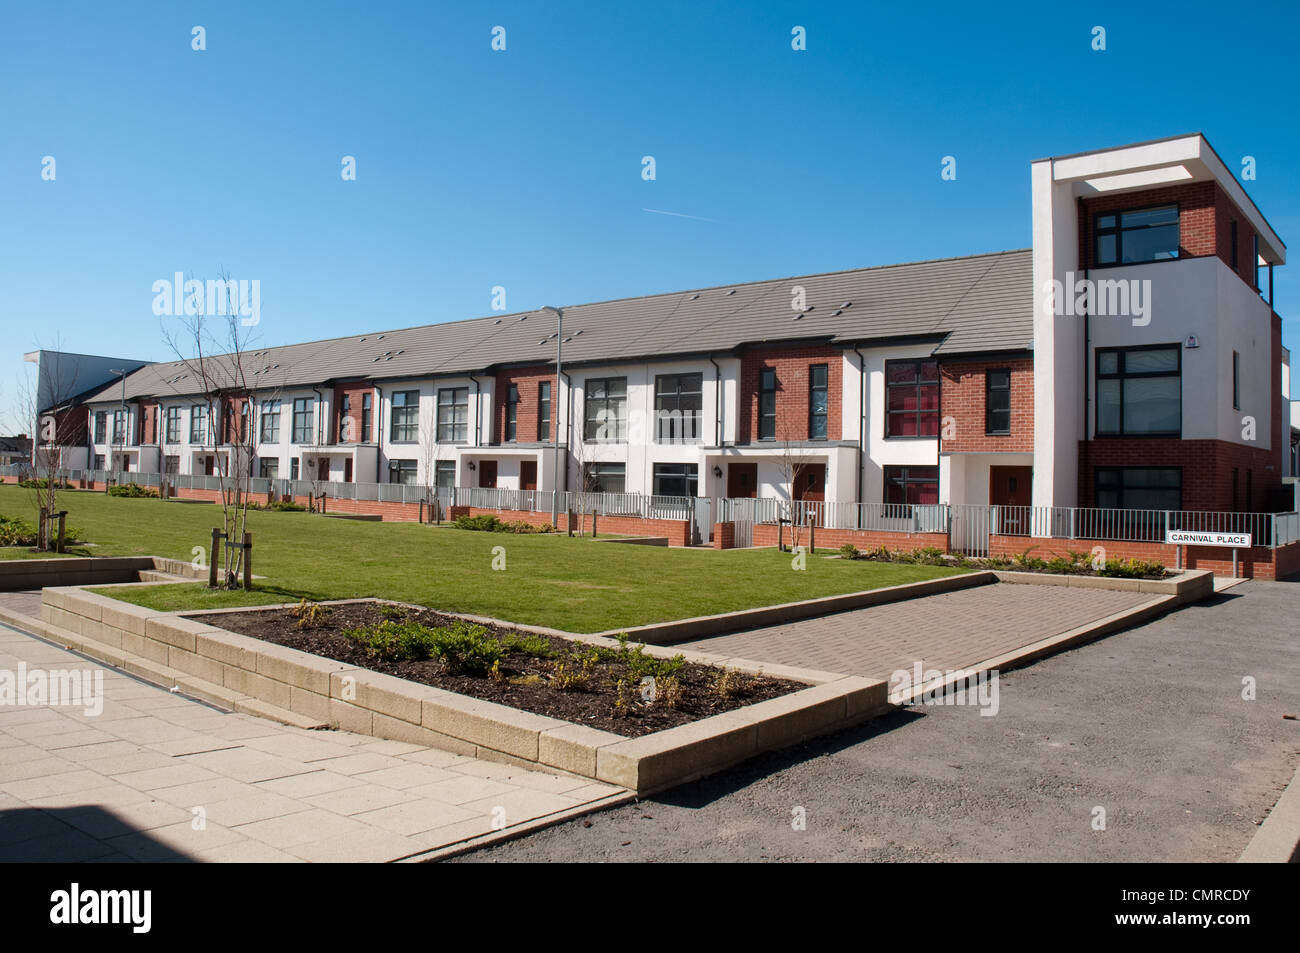 The Maine Place a development by Prospect Homes, built on the site of Maine Road Stadium, former home to Manchester Stock Photo